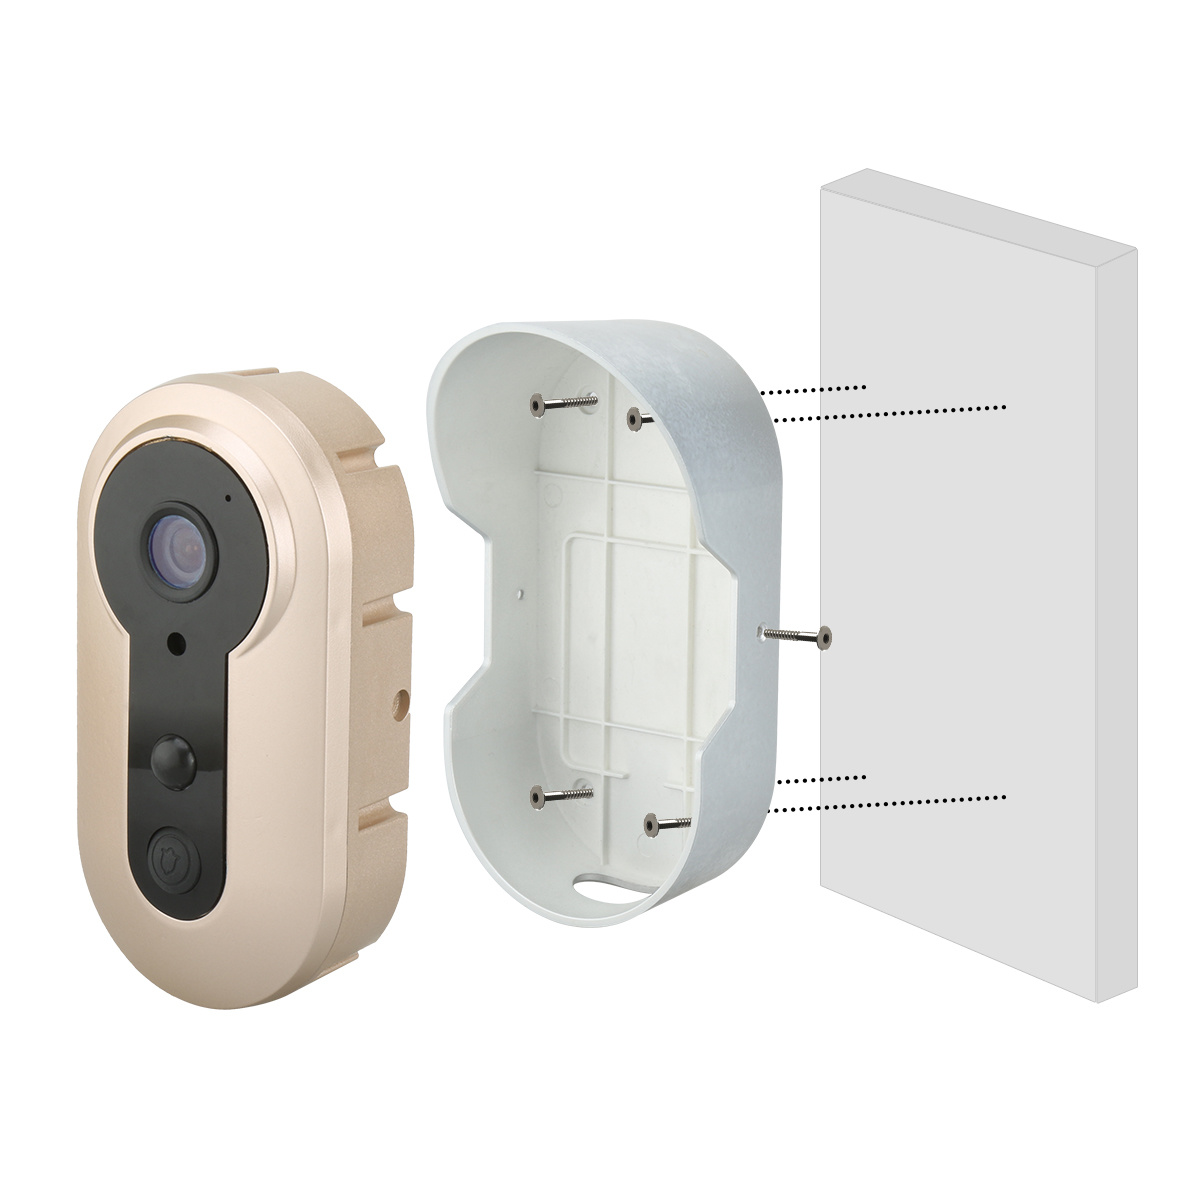 Battery Operated Wireless Security Door Cameras Remote Ring HD Phone Smart PIR Motion Sensor WiFi Video Doorbell